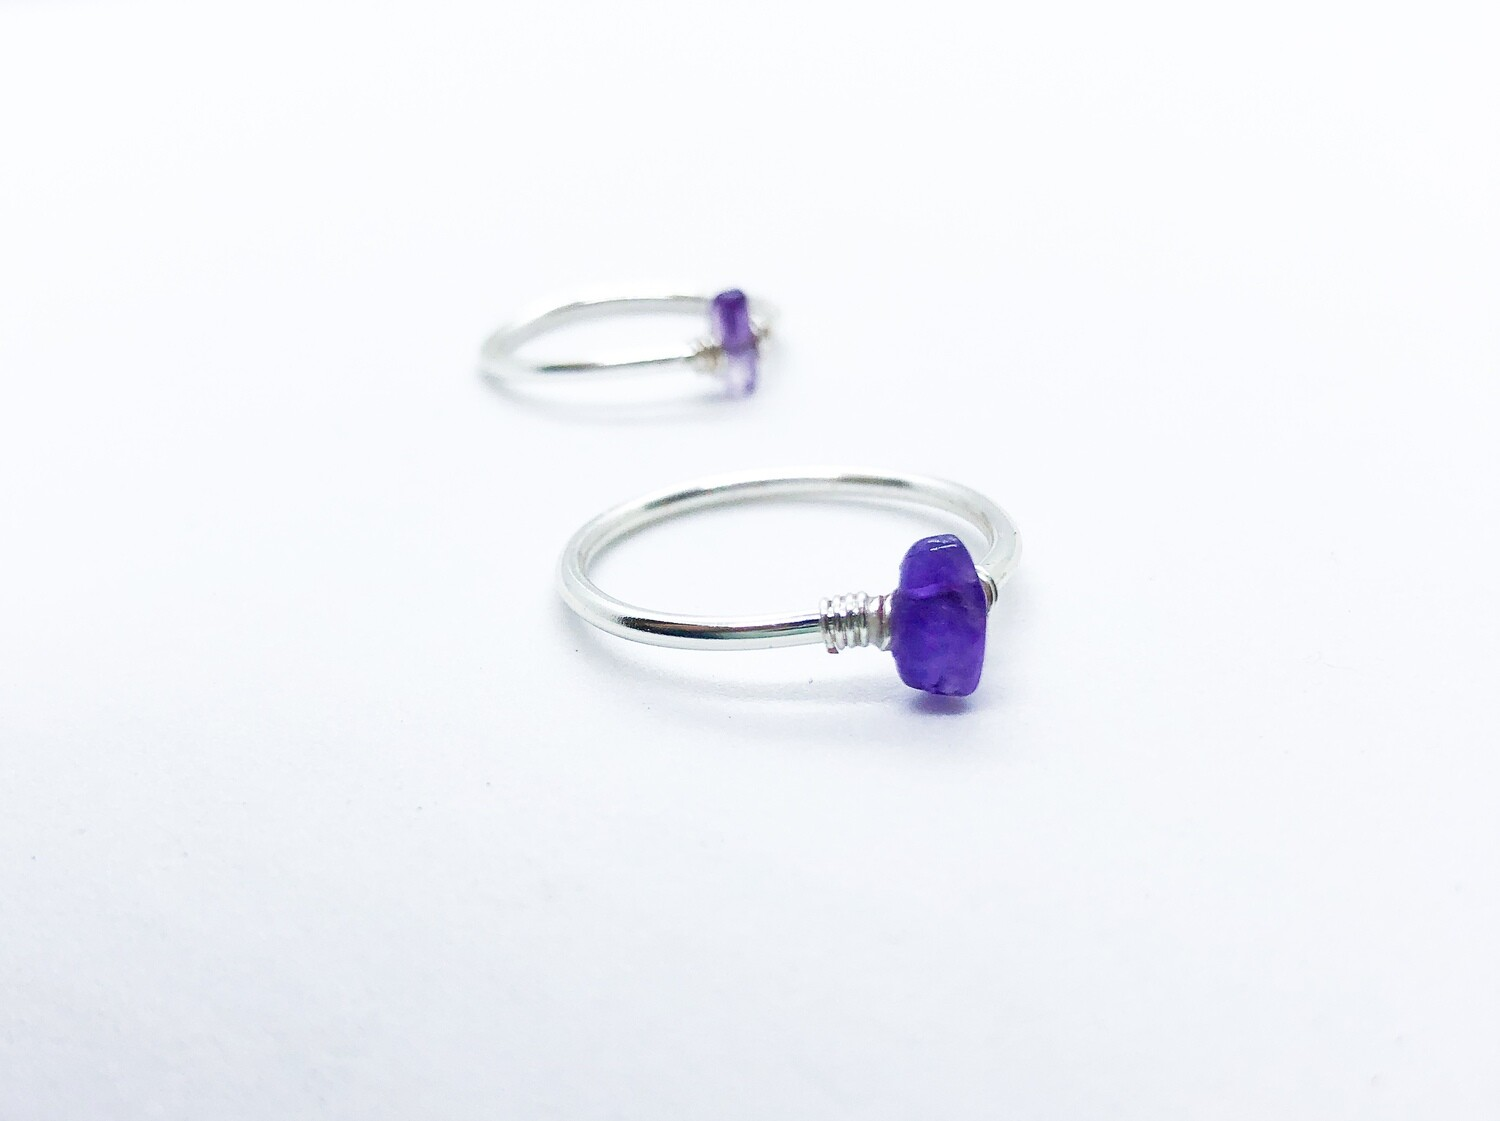 Amethyst Simple Stacking Ring . // . Gift that Gives Back - Plant a Tree . // . The Sobriety Stone . // . Layering Statement Crystal Ring